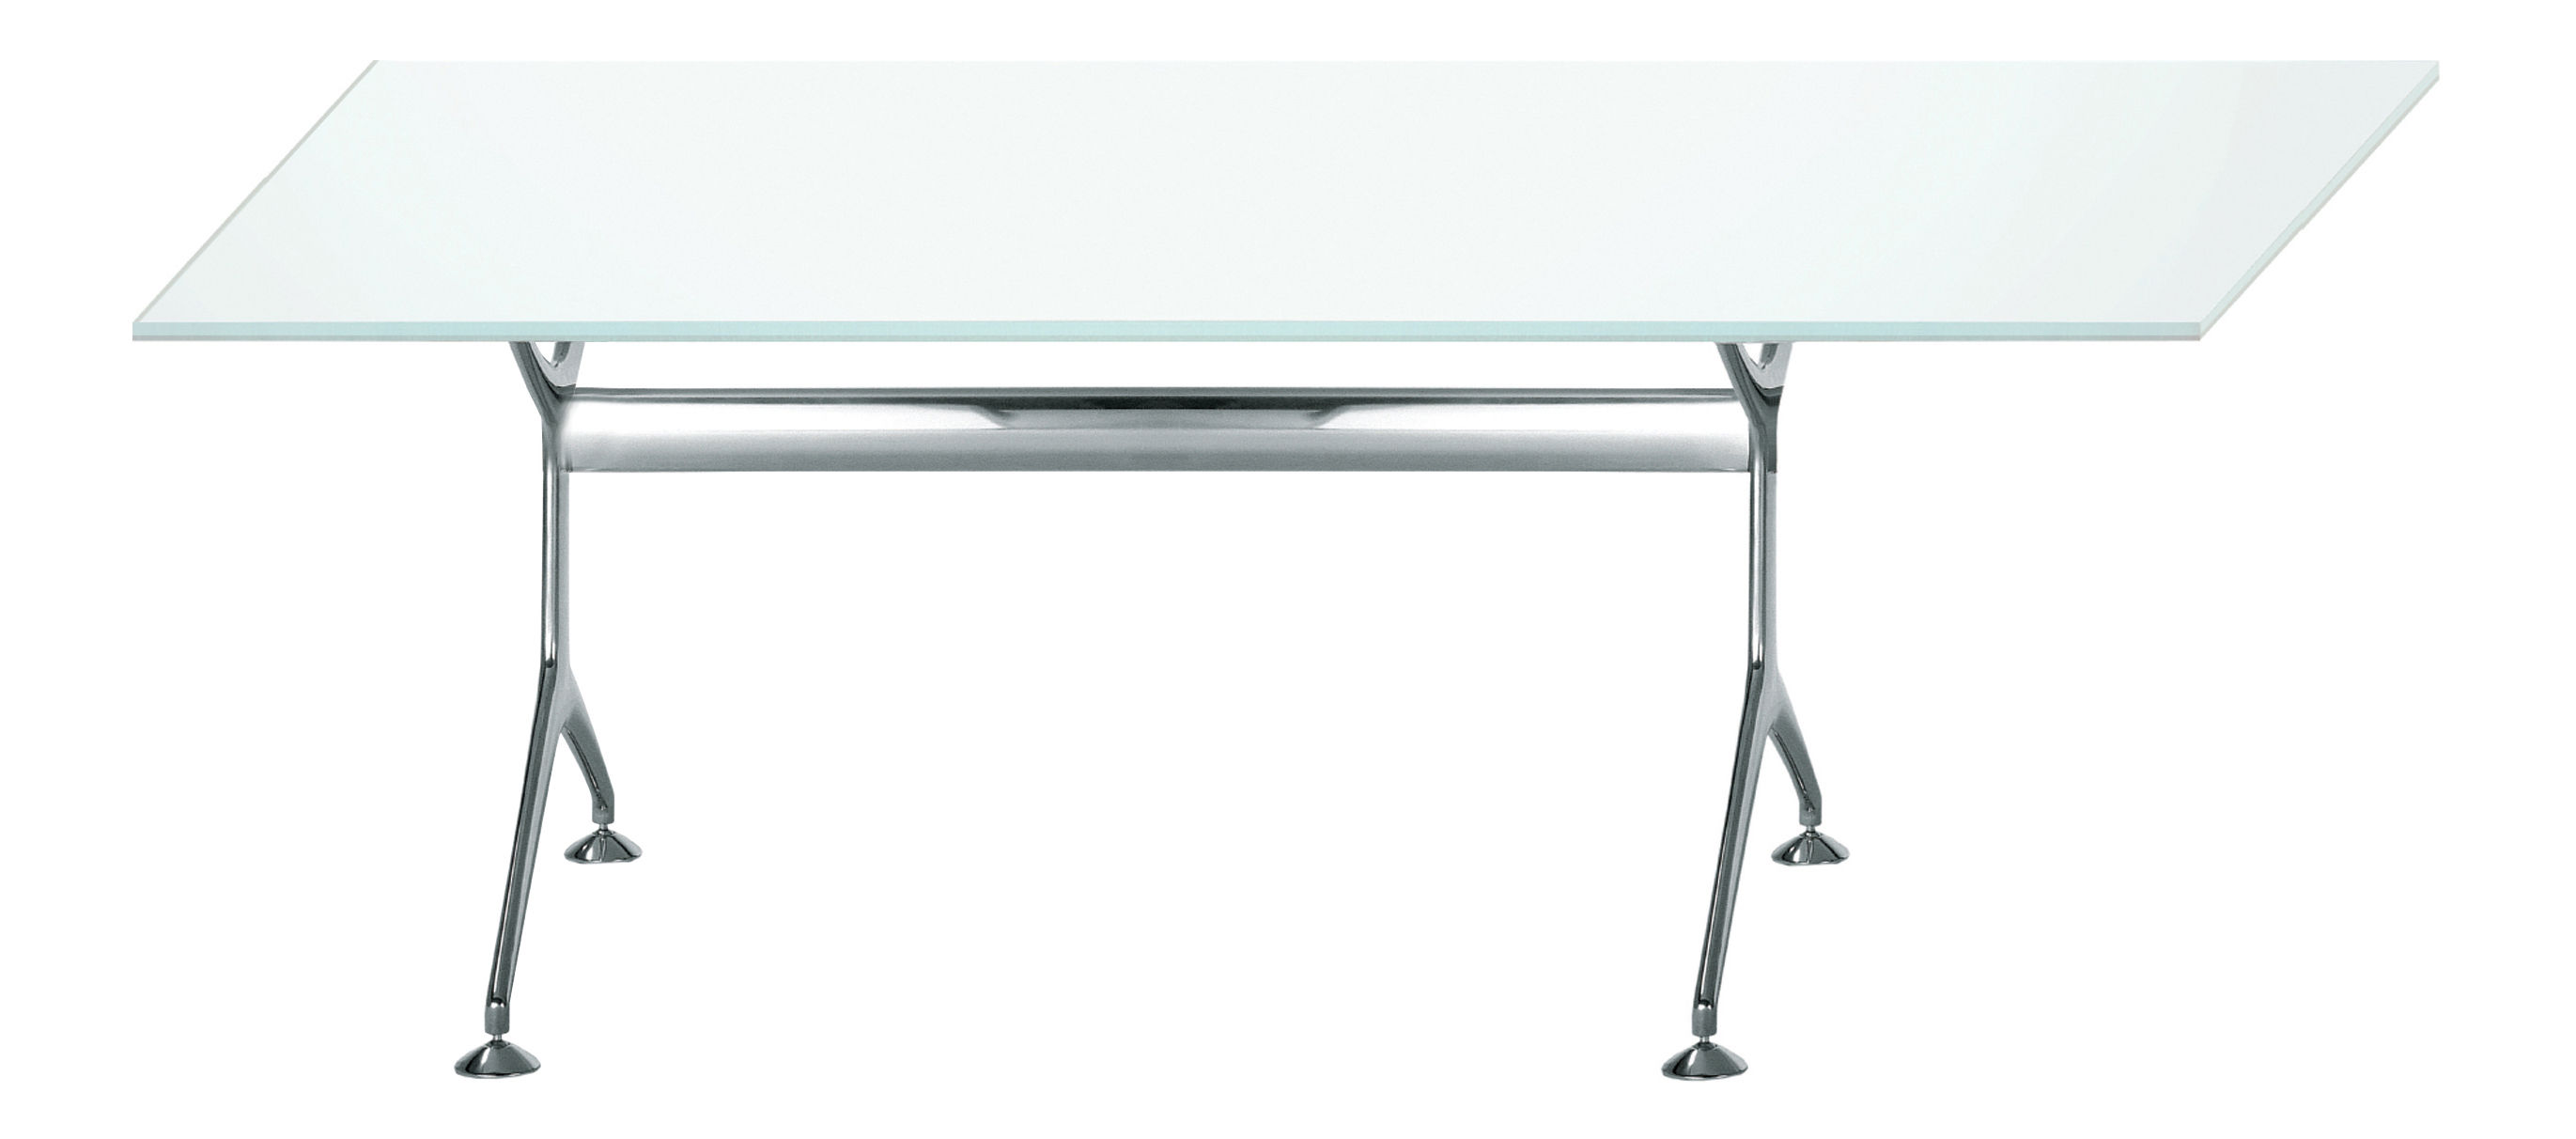 Furniture - Office Furniture - Frametable Rectangular table - 190 x 85 cm by Alias - Polished aluminium structure / extra clear glass top - Glass, Polished aluminium